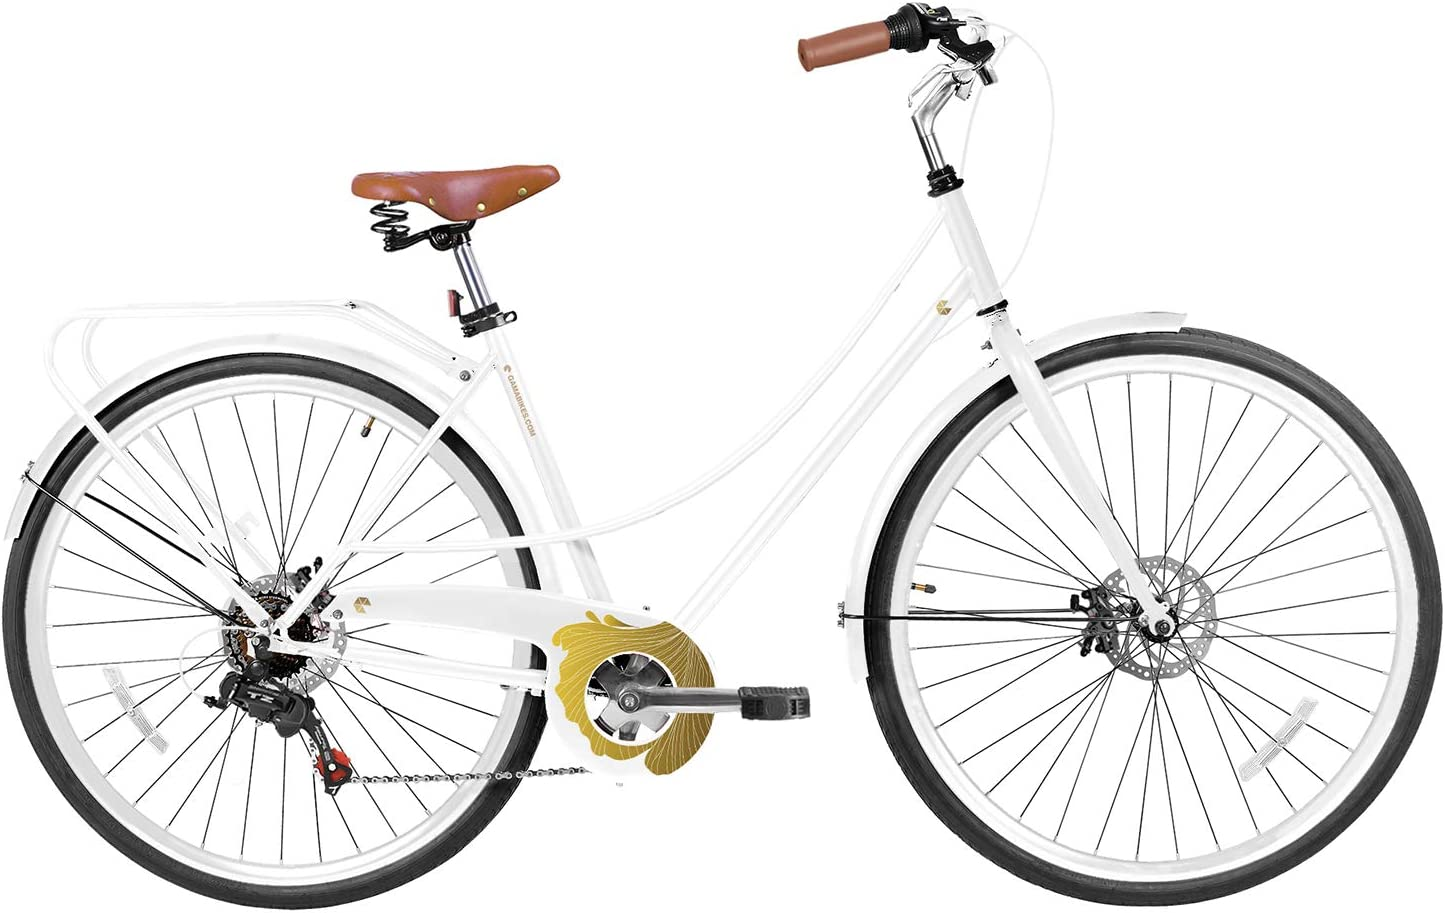 Gama Bikes City Avenue 700C,28 6 Speed Shimano and Disc Brake Bicycle Elegant Design on a Practical Commuter Step-Through Comfort Bike Frame Turquoise